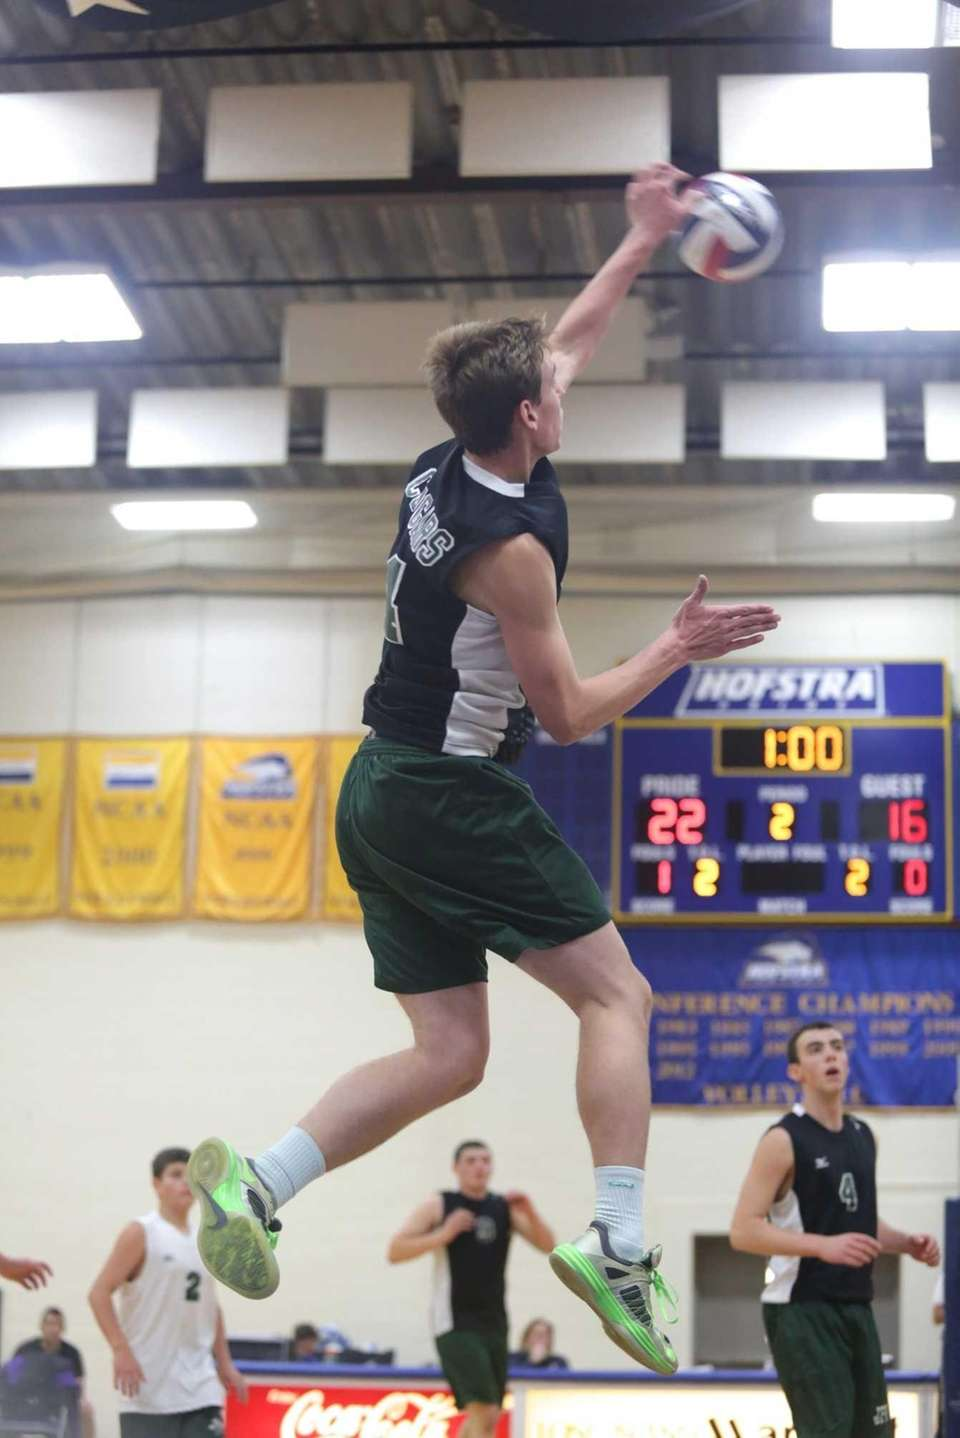 Bellmore JFK's Gary Anderson scores a point against